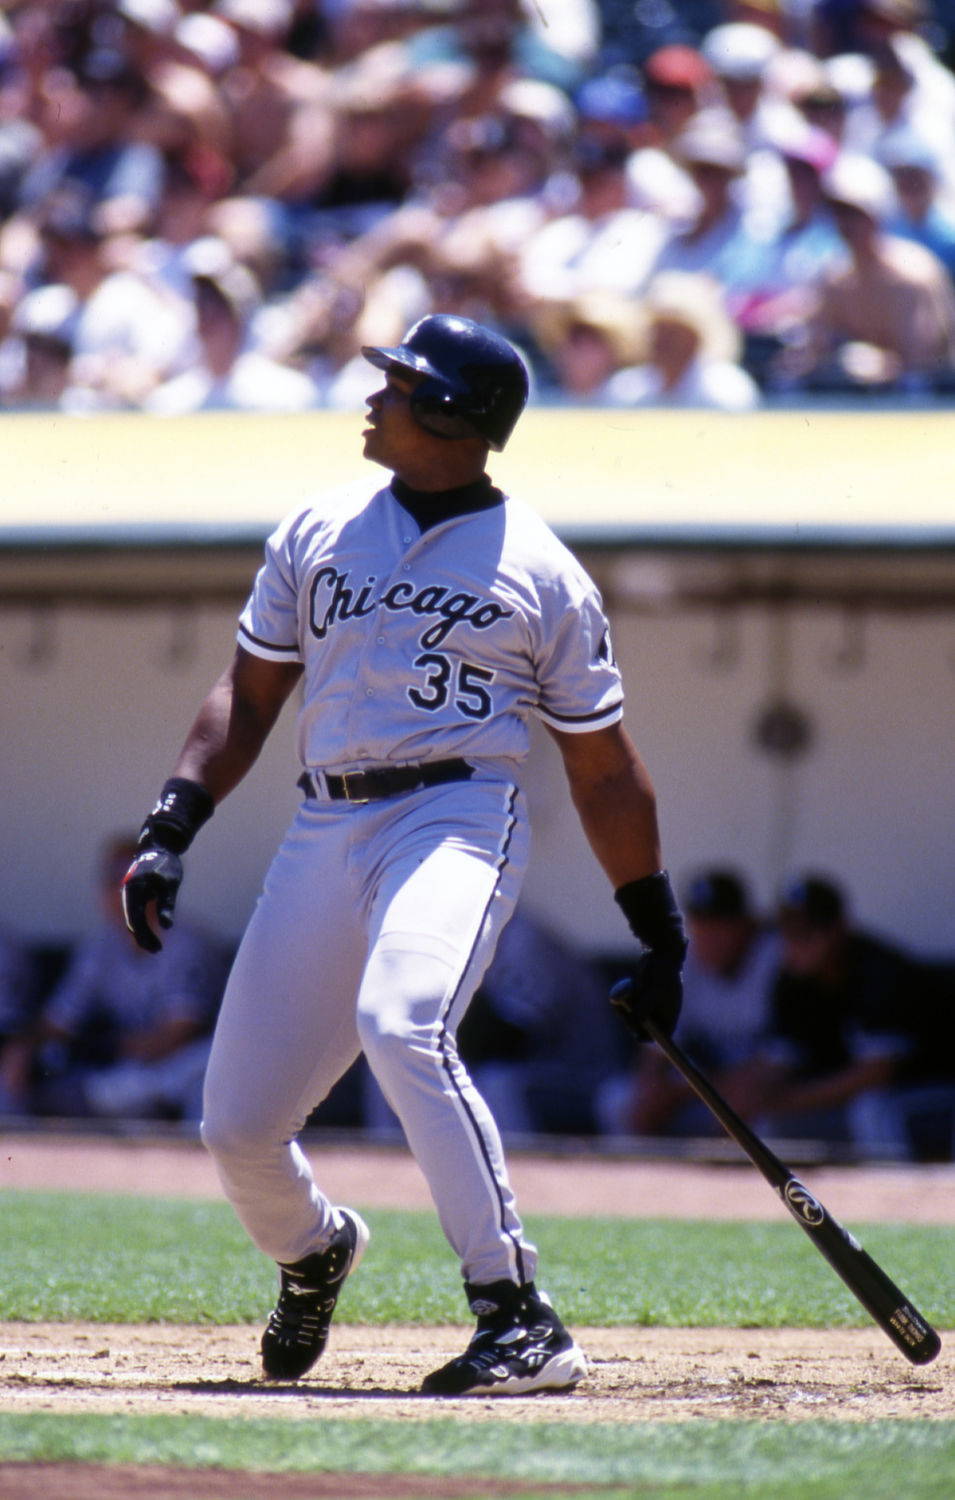 Frank Thomas (designated hitter) Thomas Frank Baseball Hall of Fame